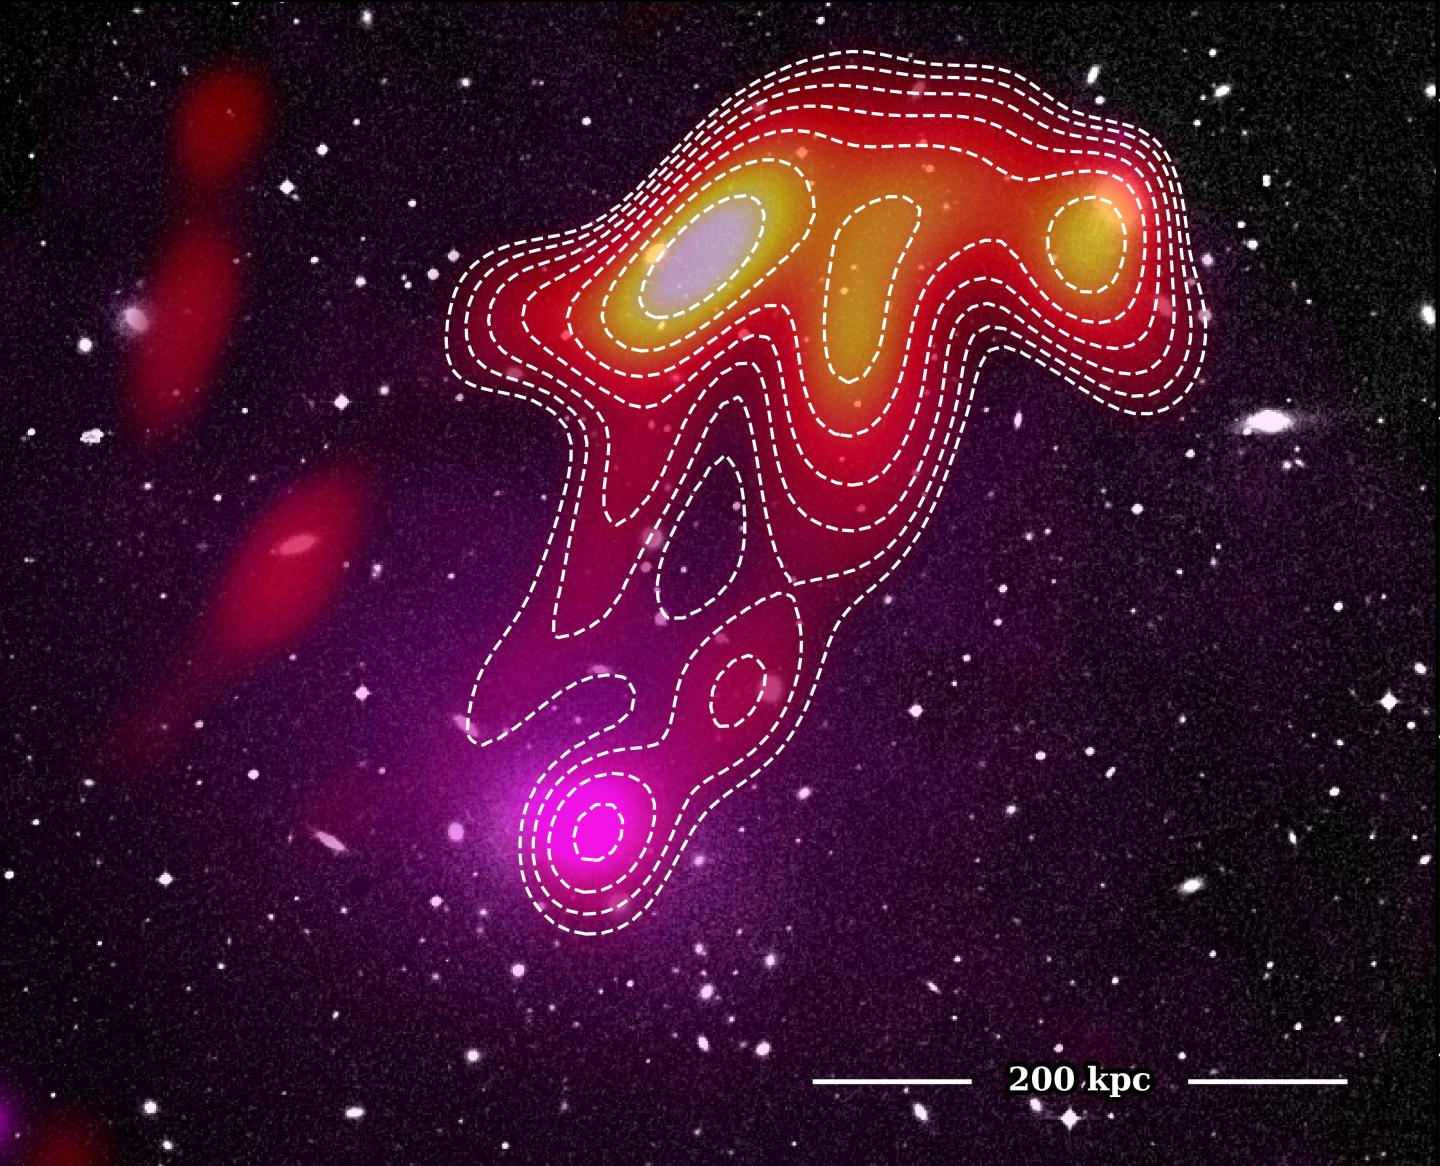 A composite image of the USS Jellyfish in Abell 2877